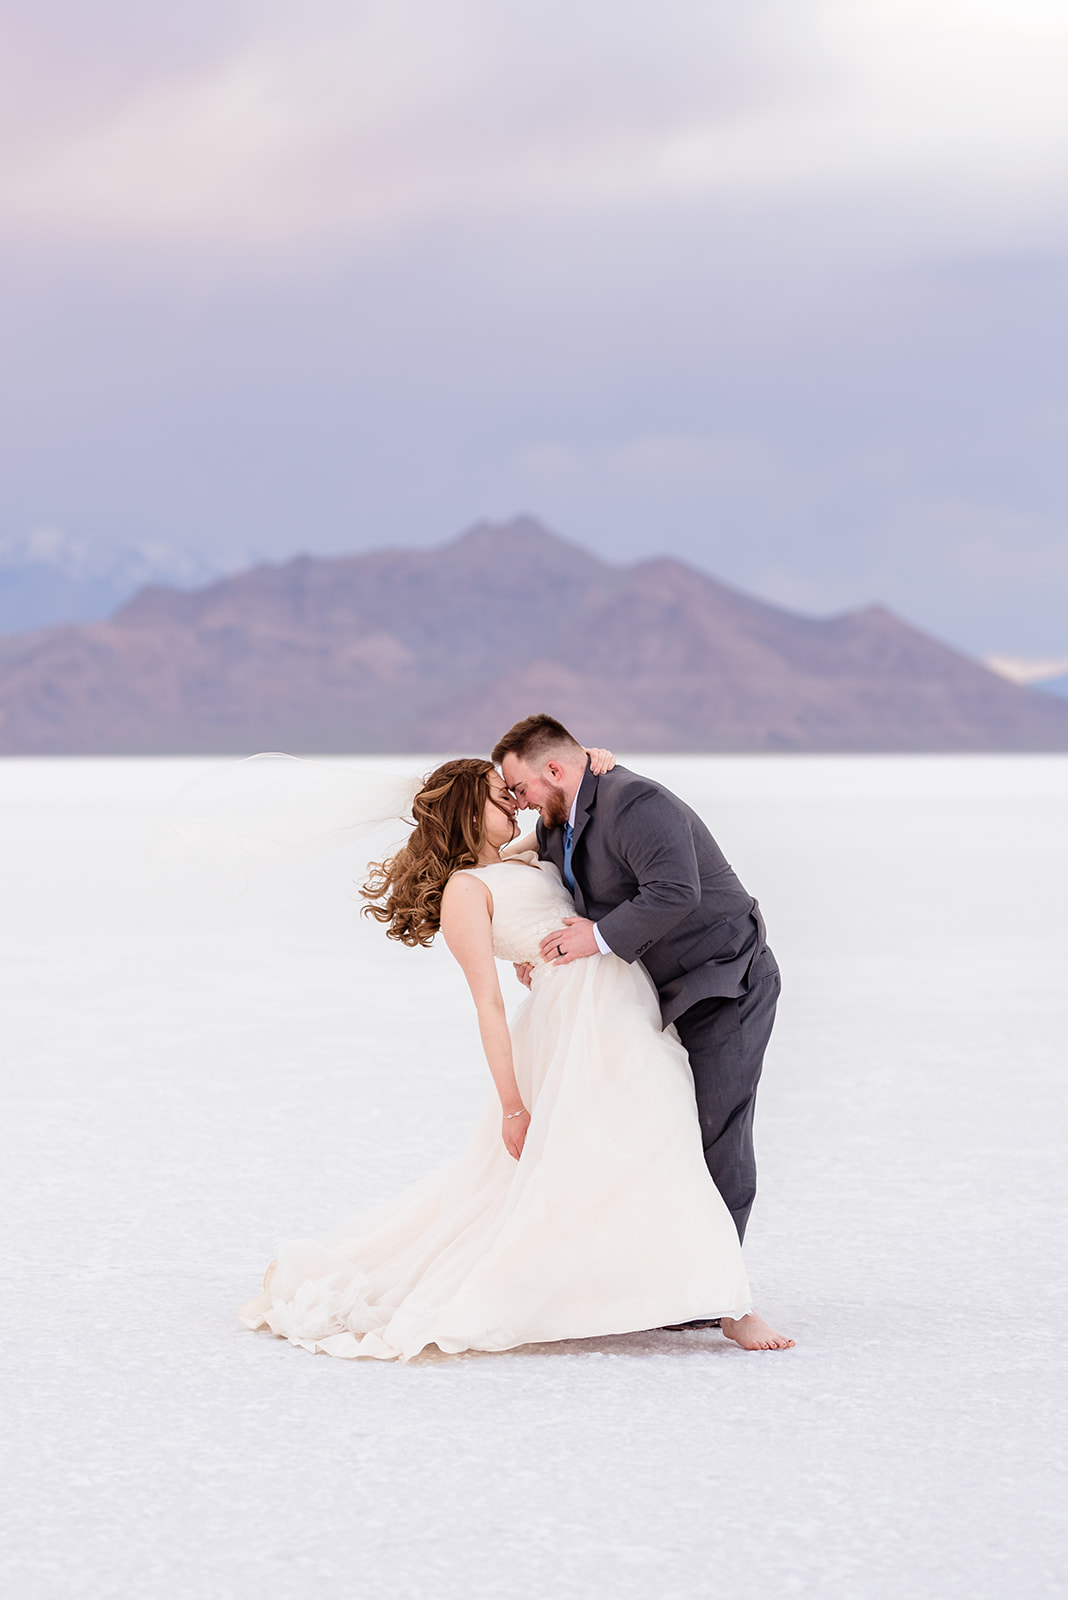 Bride and Groom dipping portraits at the Bonneville Salt Falts in Utah. Grey suit and blue tie combo. Ivory and Gold wedding dress. Taken by Coley Cook Photography.